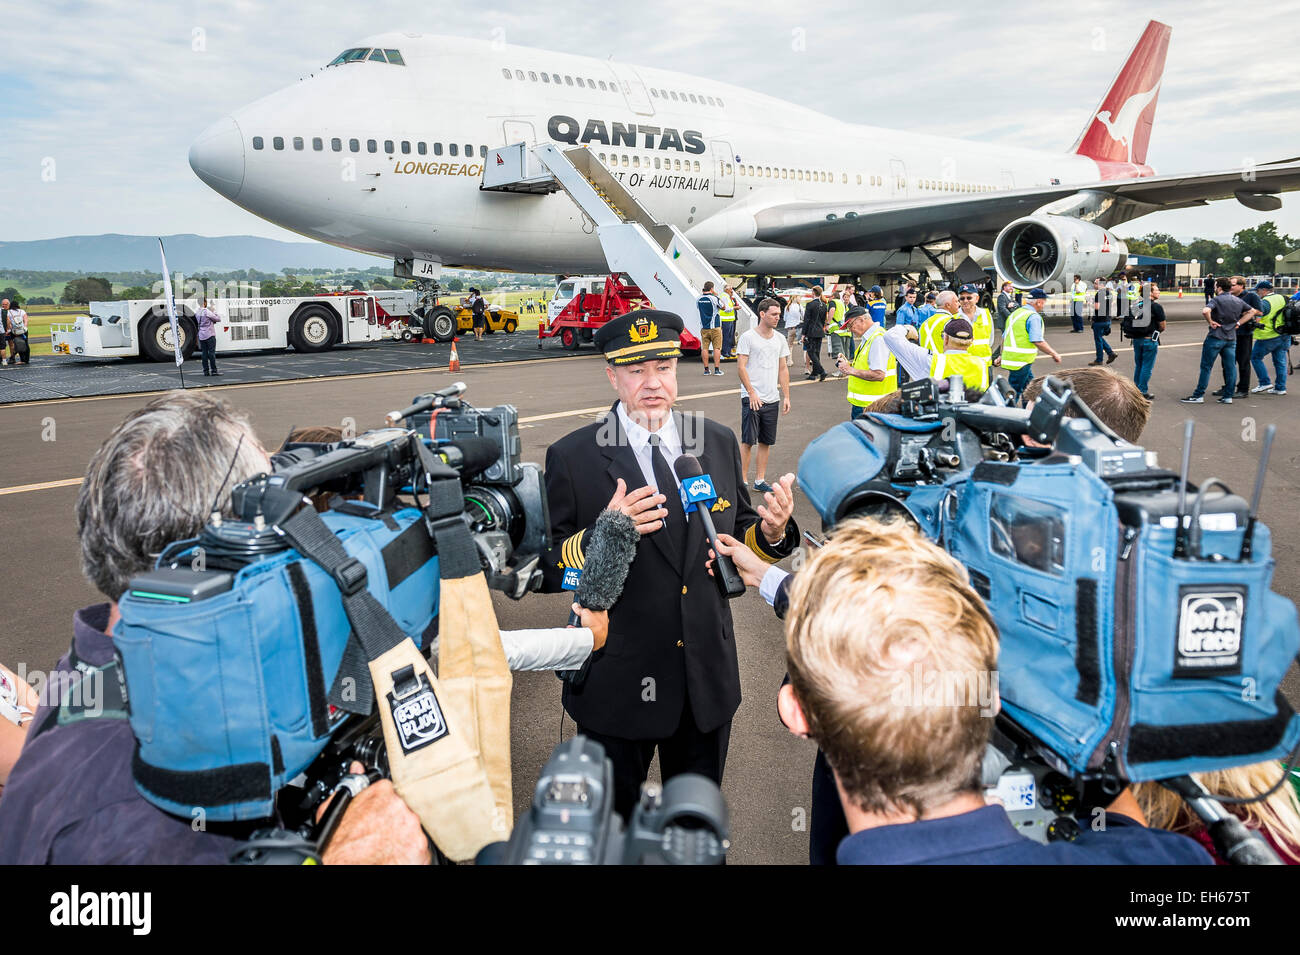 Sydney, Australia. 8th March, 2015. Media help recreating the historic photograph of the record breaking crew that - Stock Image